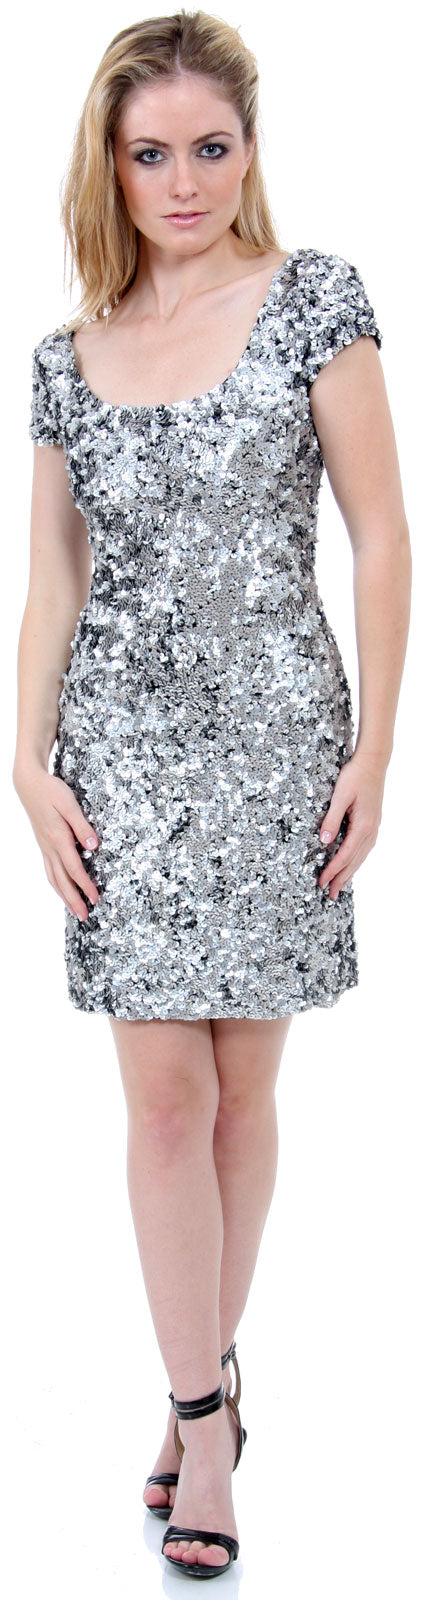 Main image of Fully Sequin Beaded Short Prom Dress